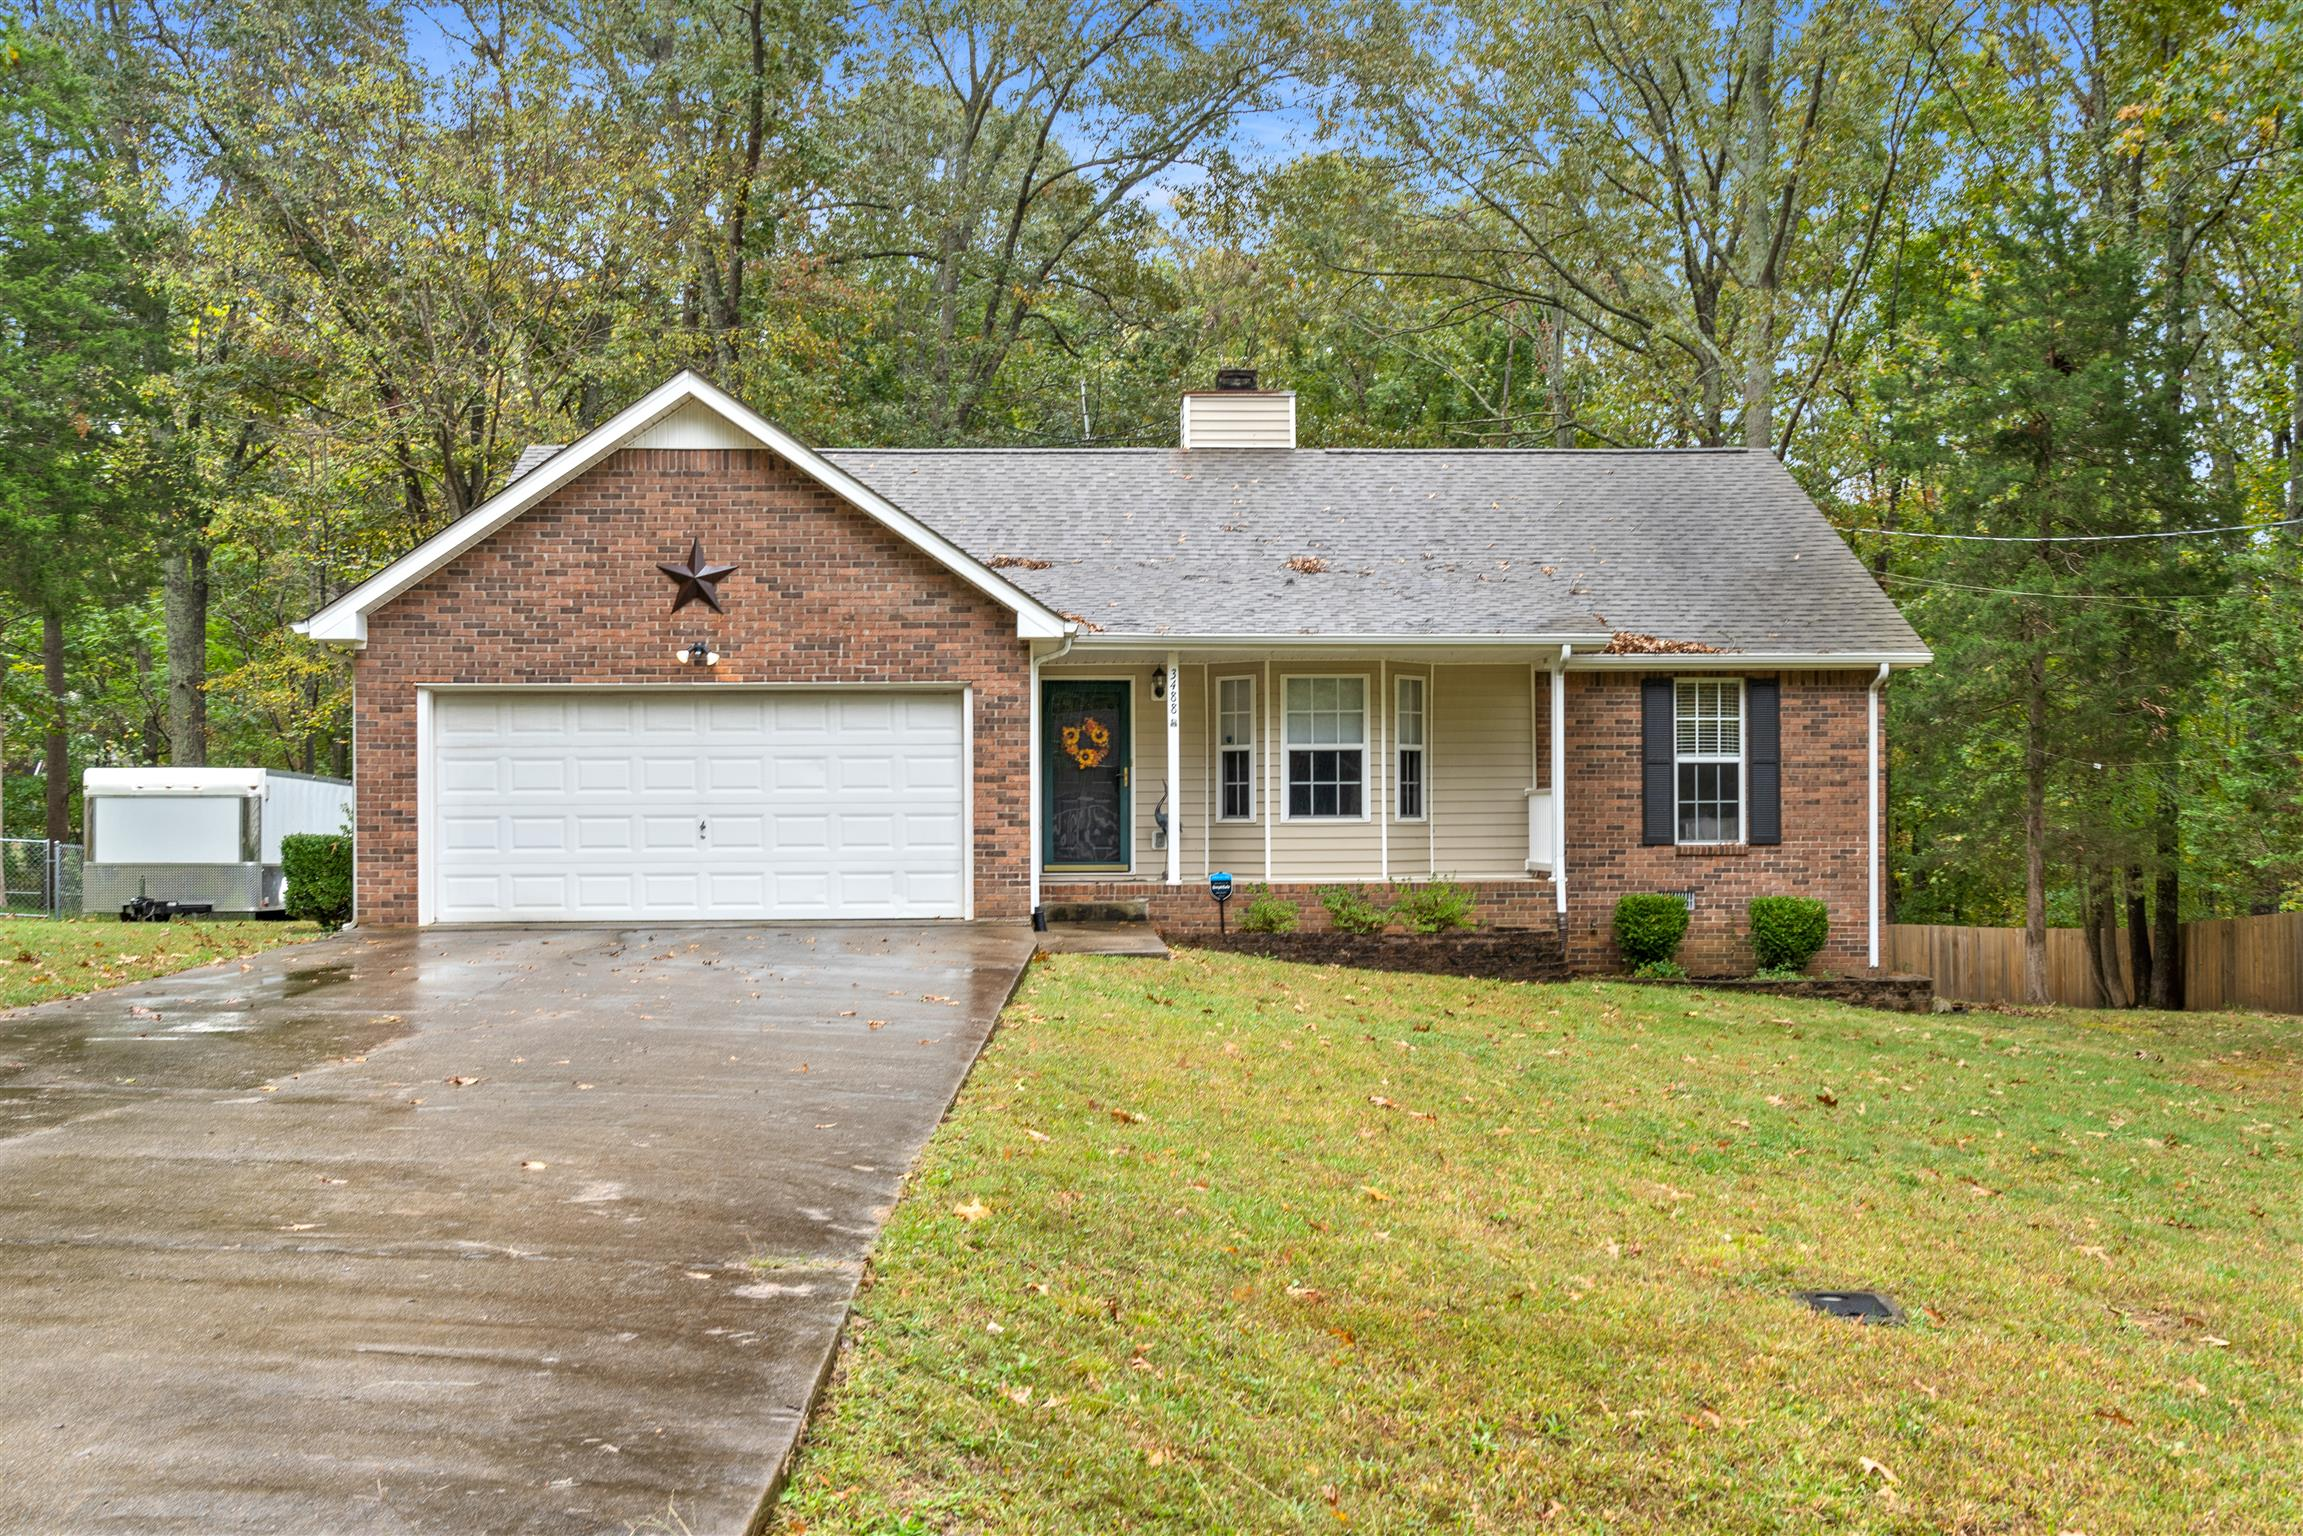 3488 Hunters Ridge, Woodlawn, TN 37191 - Woodlawn, TN real estate listing